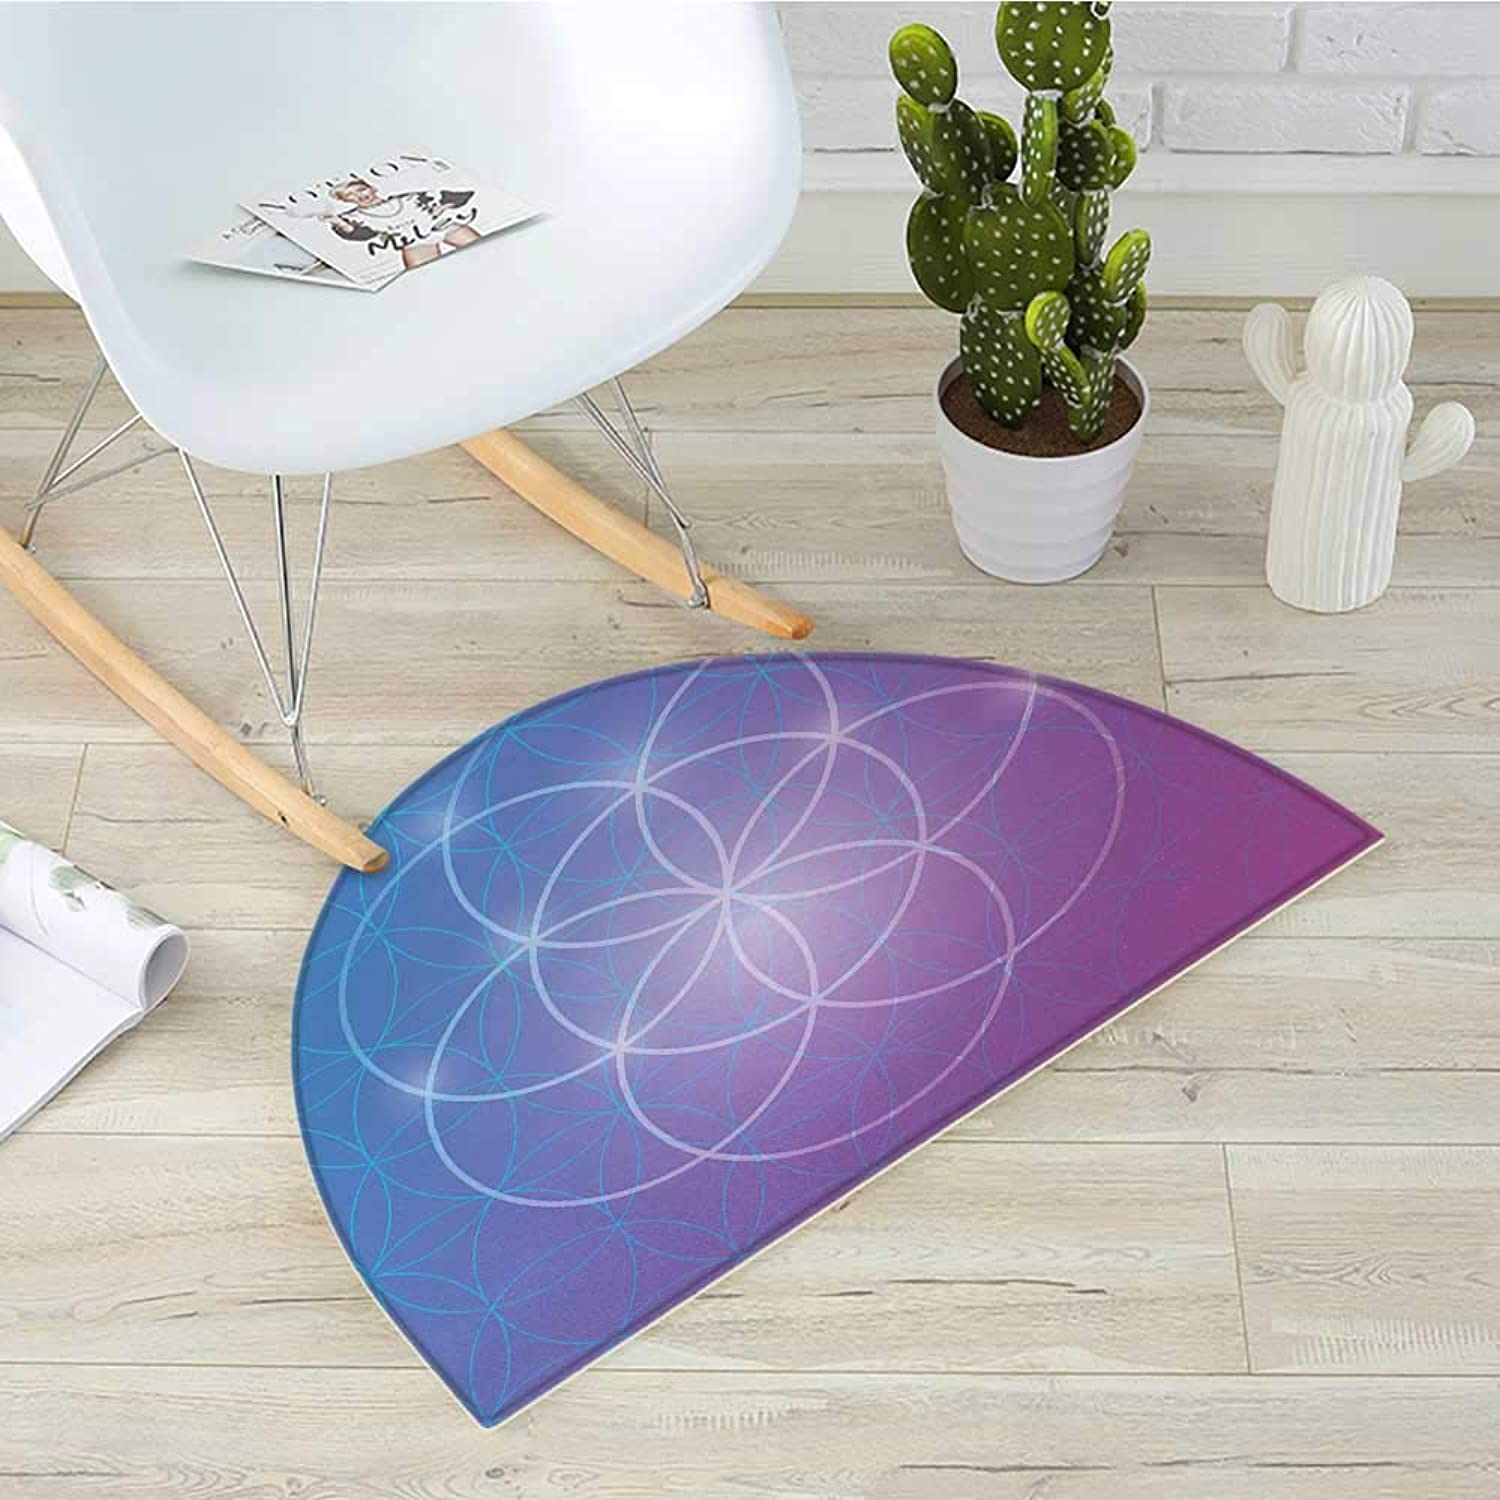 Sacred Geometry Semicircle Doormat Round Forms in Two Dimensional Space Axis Historical Artifact Image Halfmoon doormats H 43.3  xD 64.9  bluee and Purple